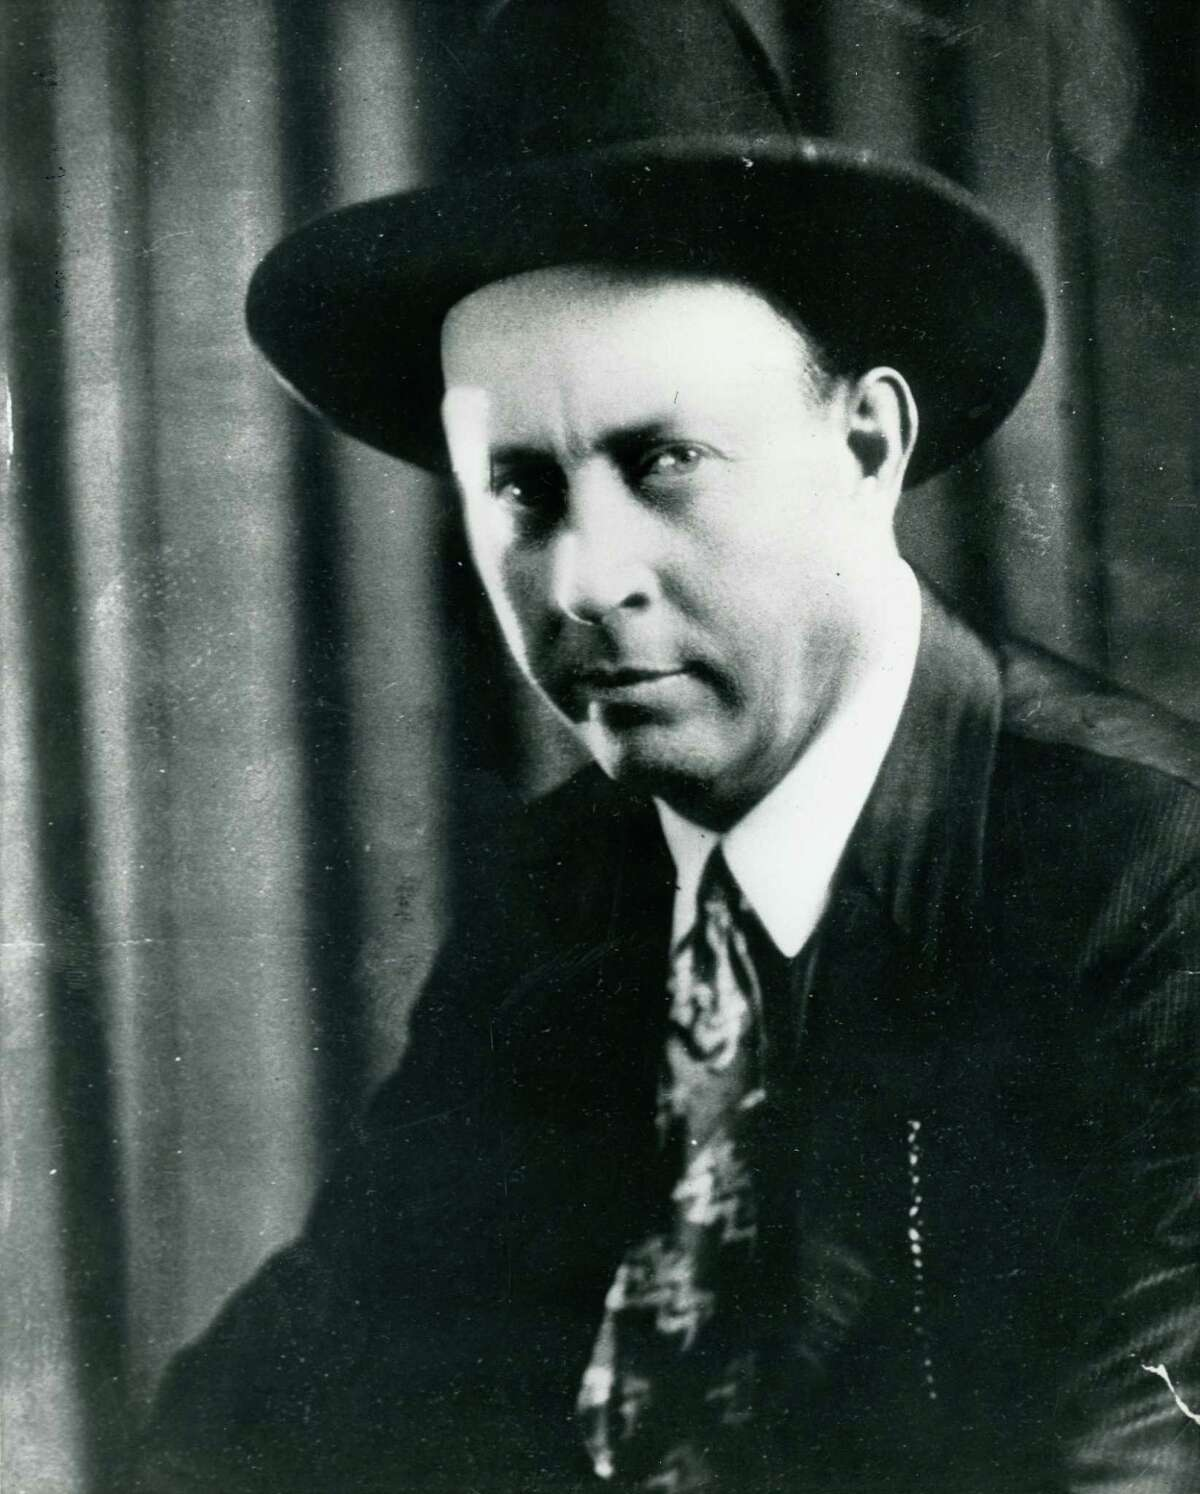 Frank Hamer, who led the posse of Texas officers that shot and killed Clyde Barrow, the southwest's